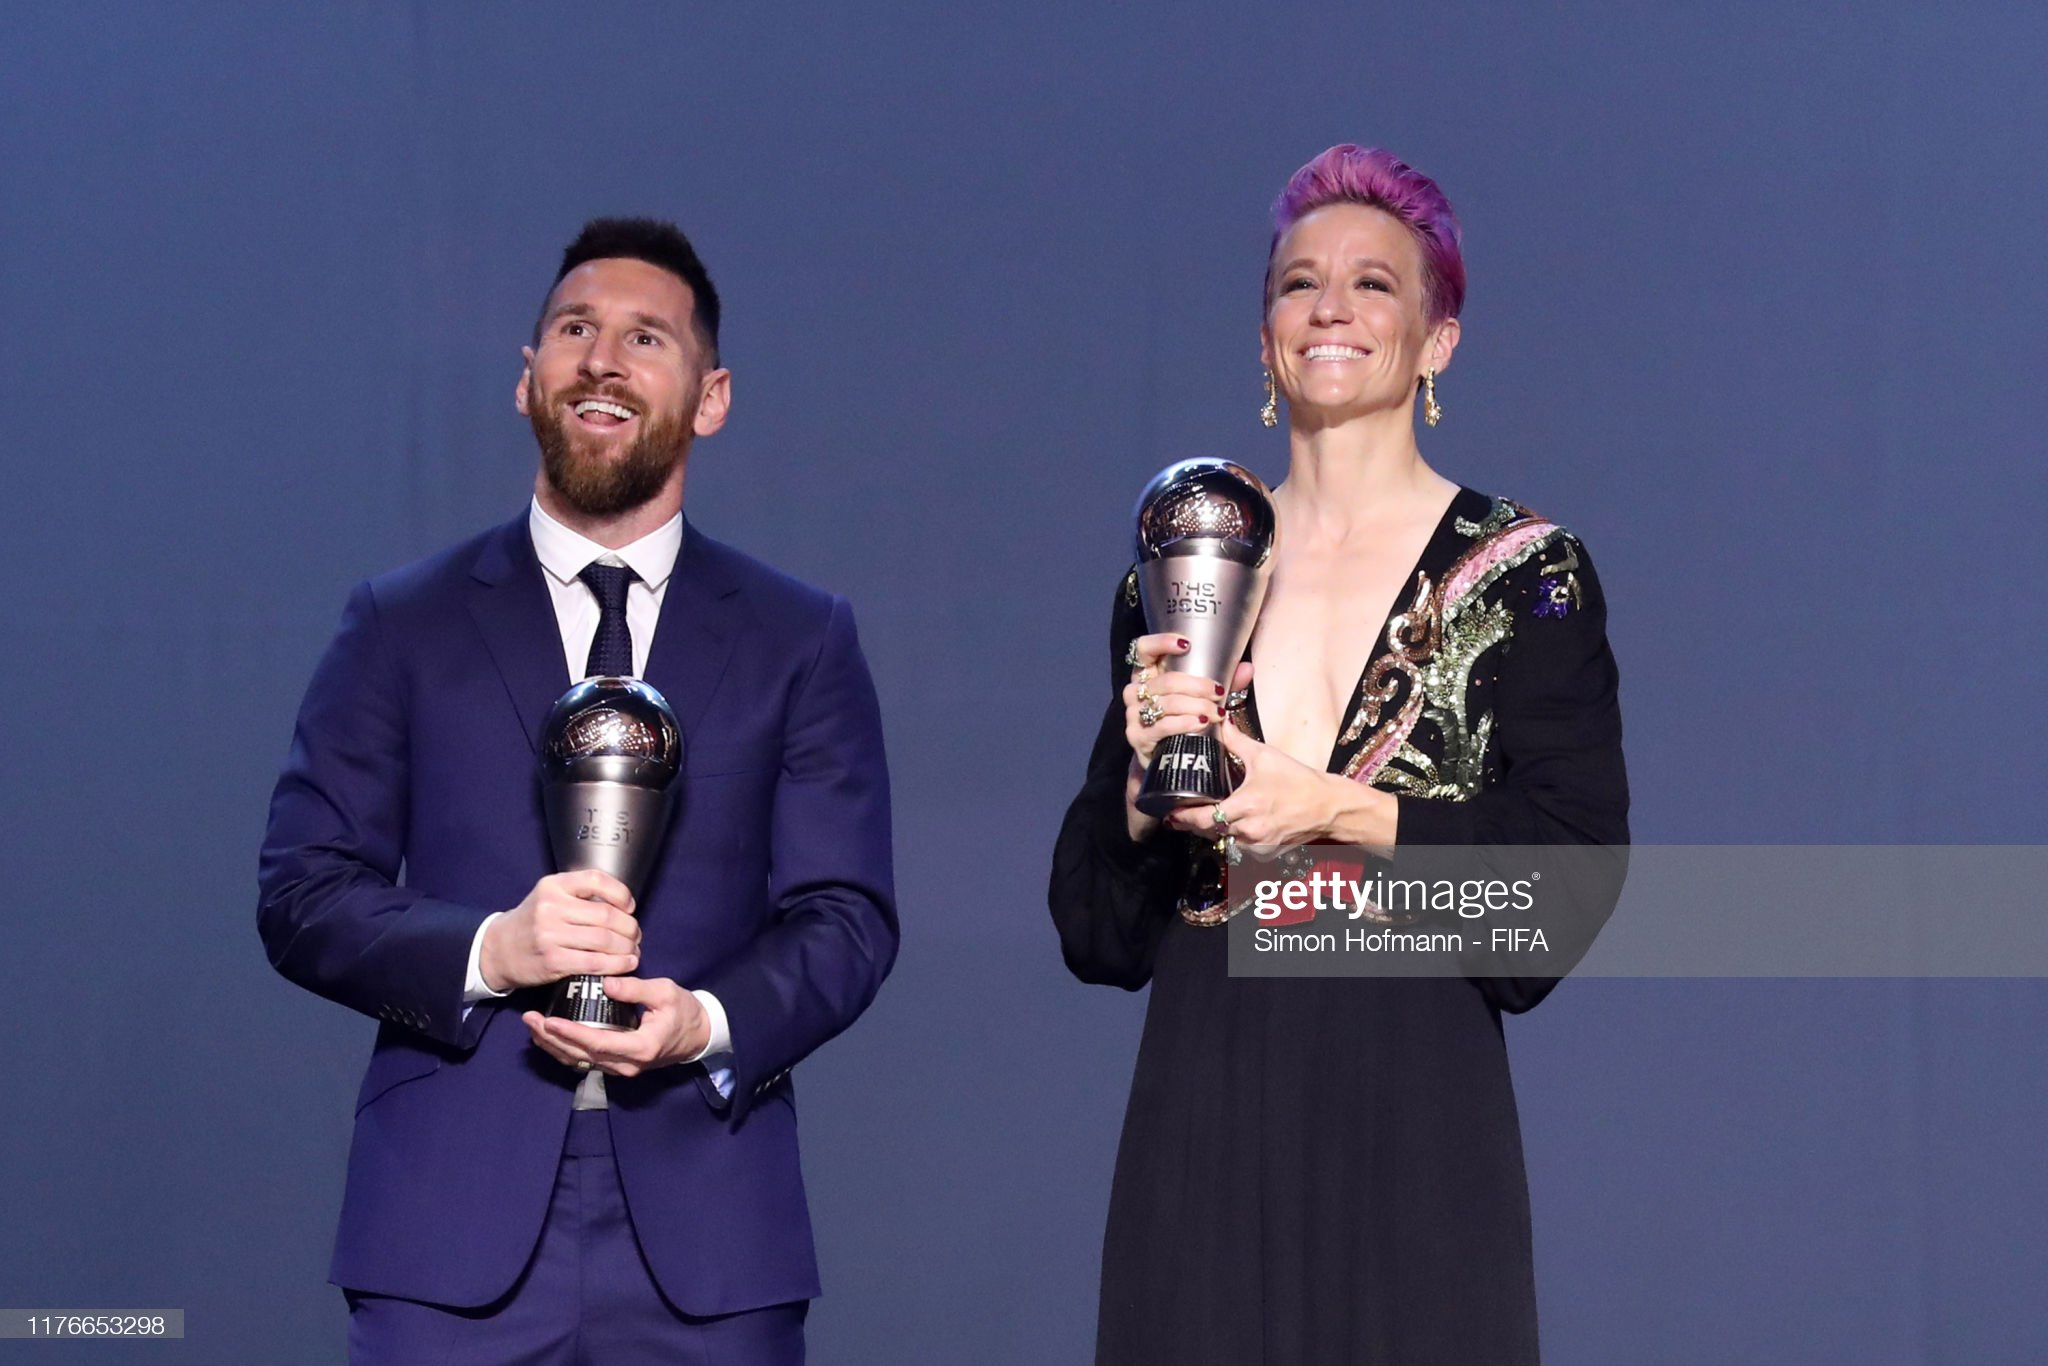 The Best FIFA Football Awards 2019 The-best-fifa-womens-player-award-winner-megan-rapinoe-of-reign-fc-picture-id1176653298?s=2048x2048